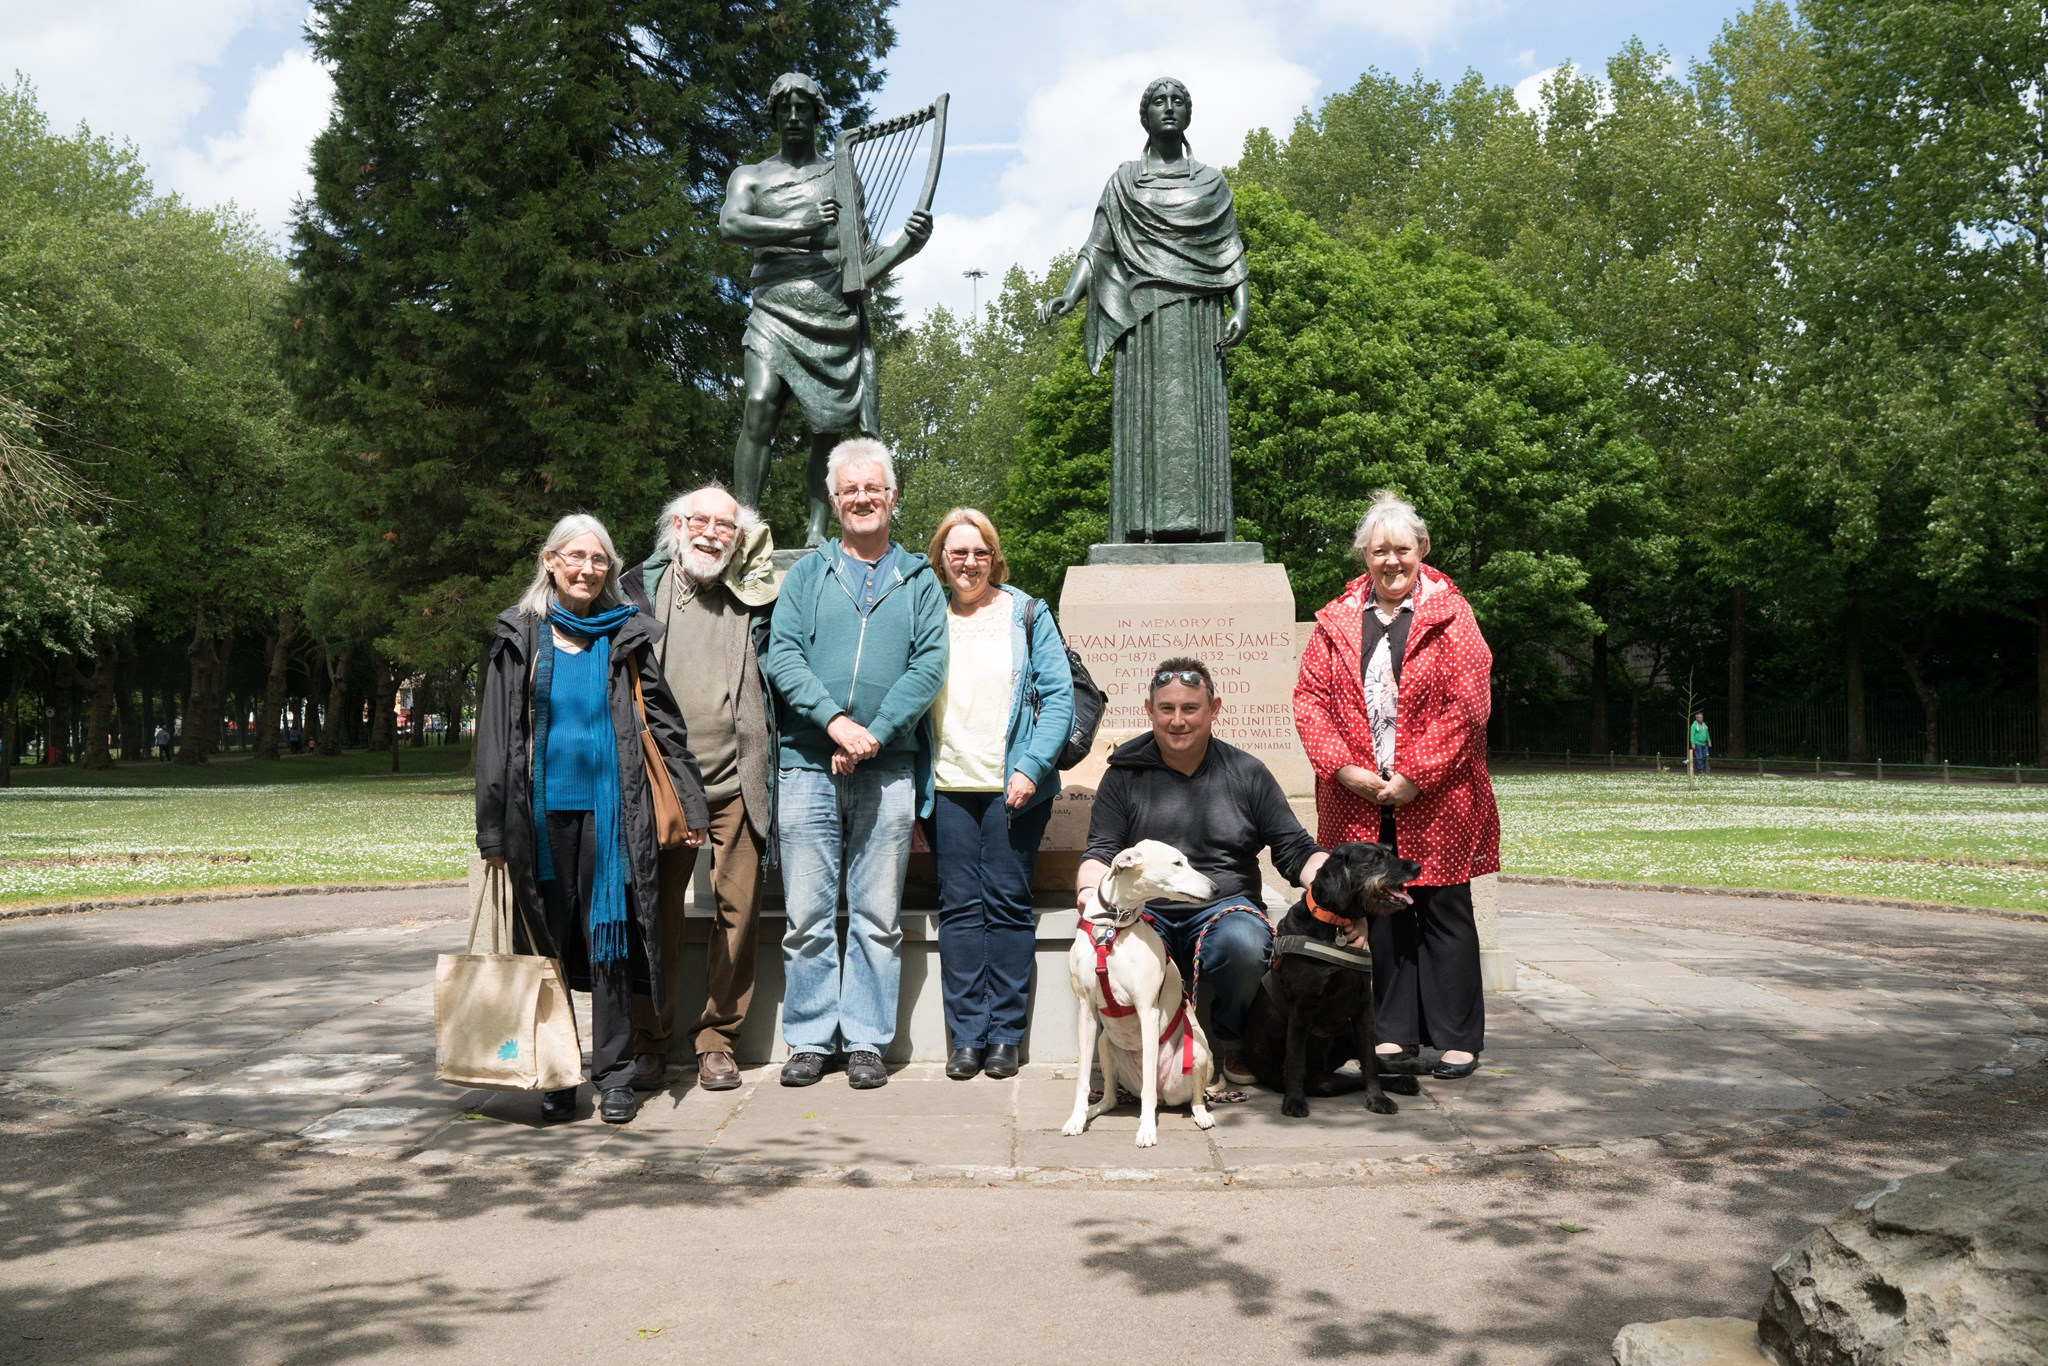 Alan with Family, Pontypridd Park, May 2017